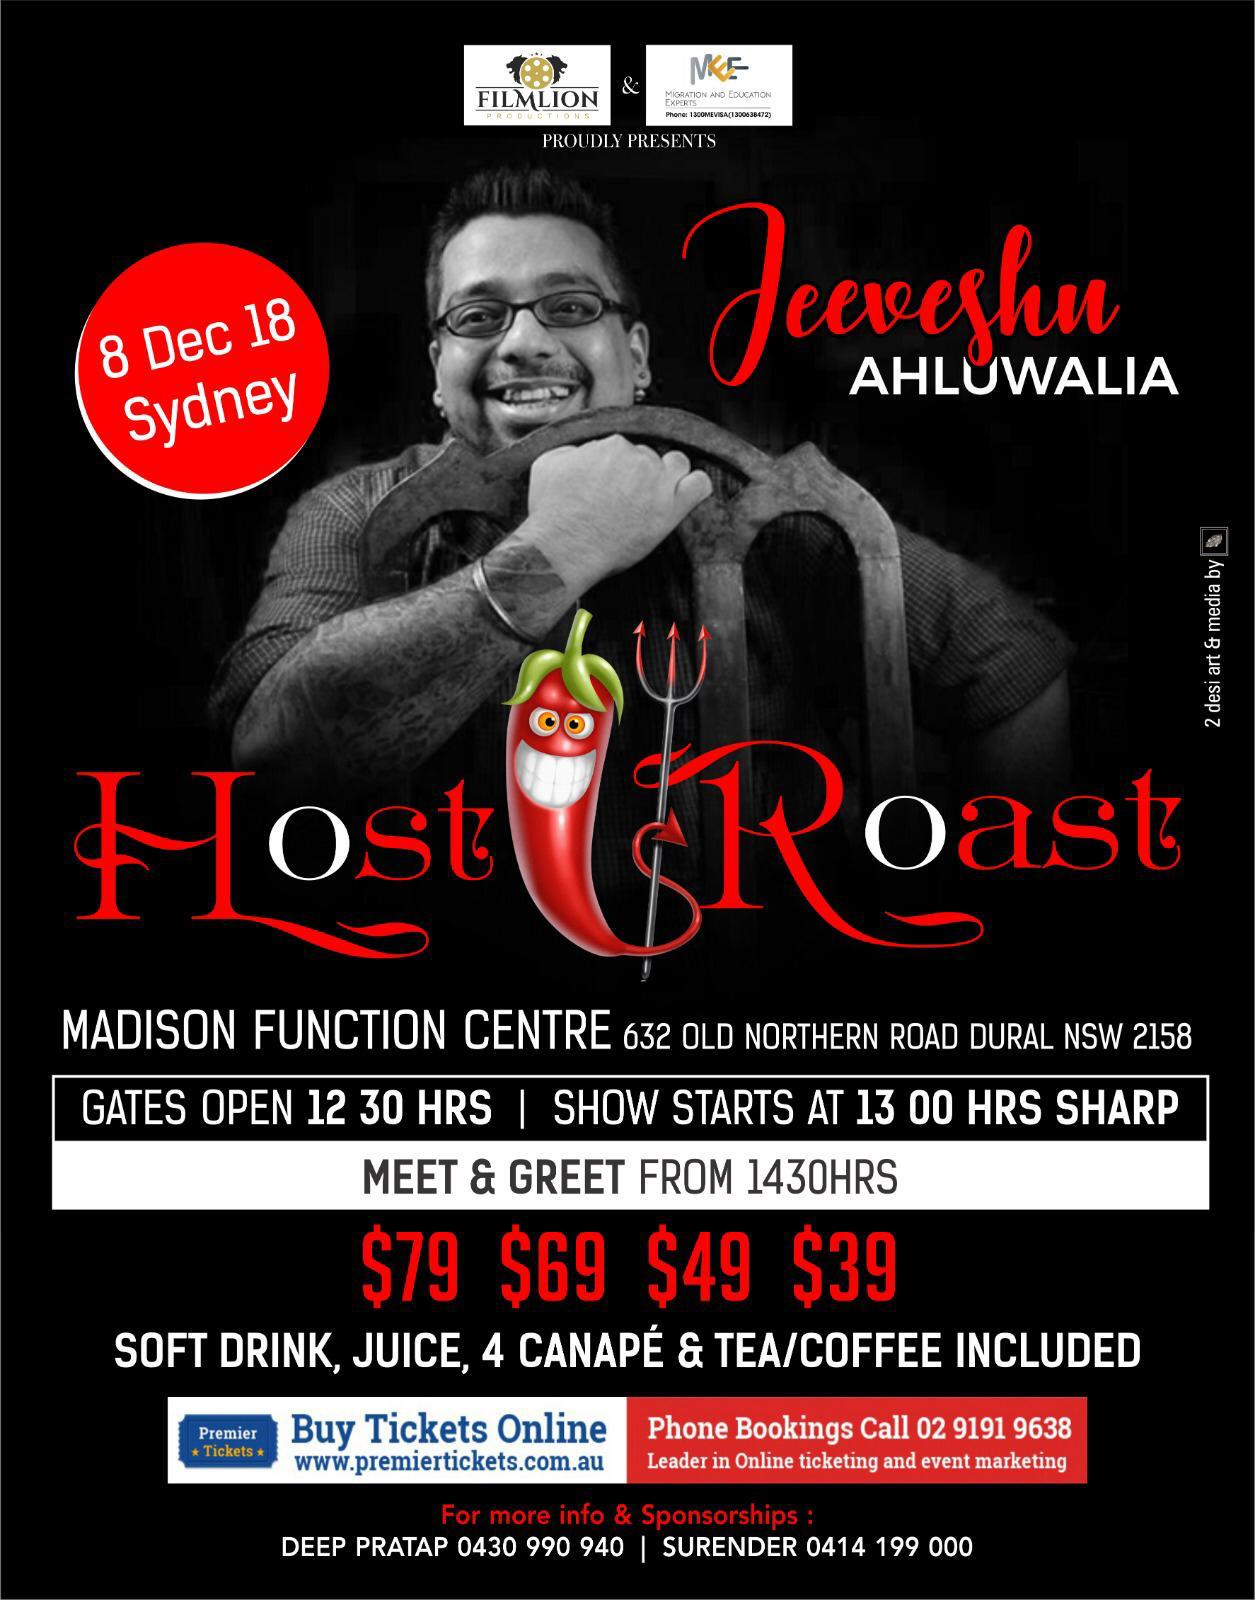 Host to Roast with Jeeveshu Ahluwalia – Sydney